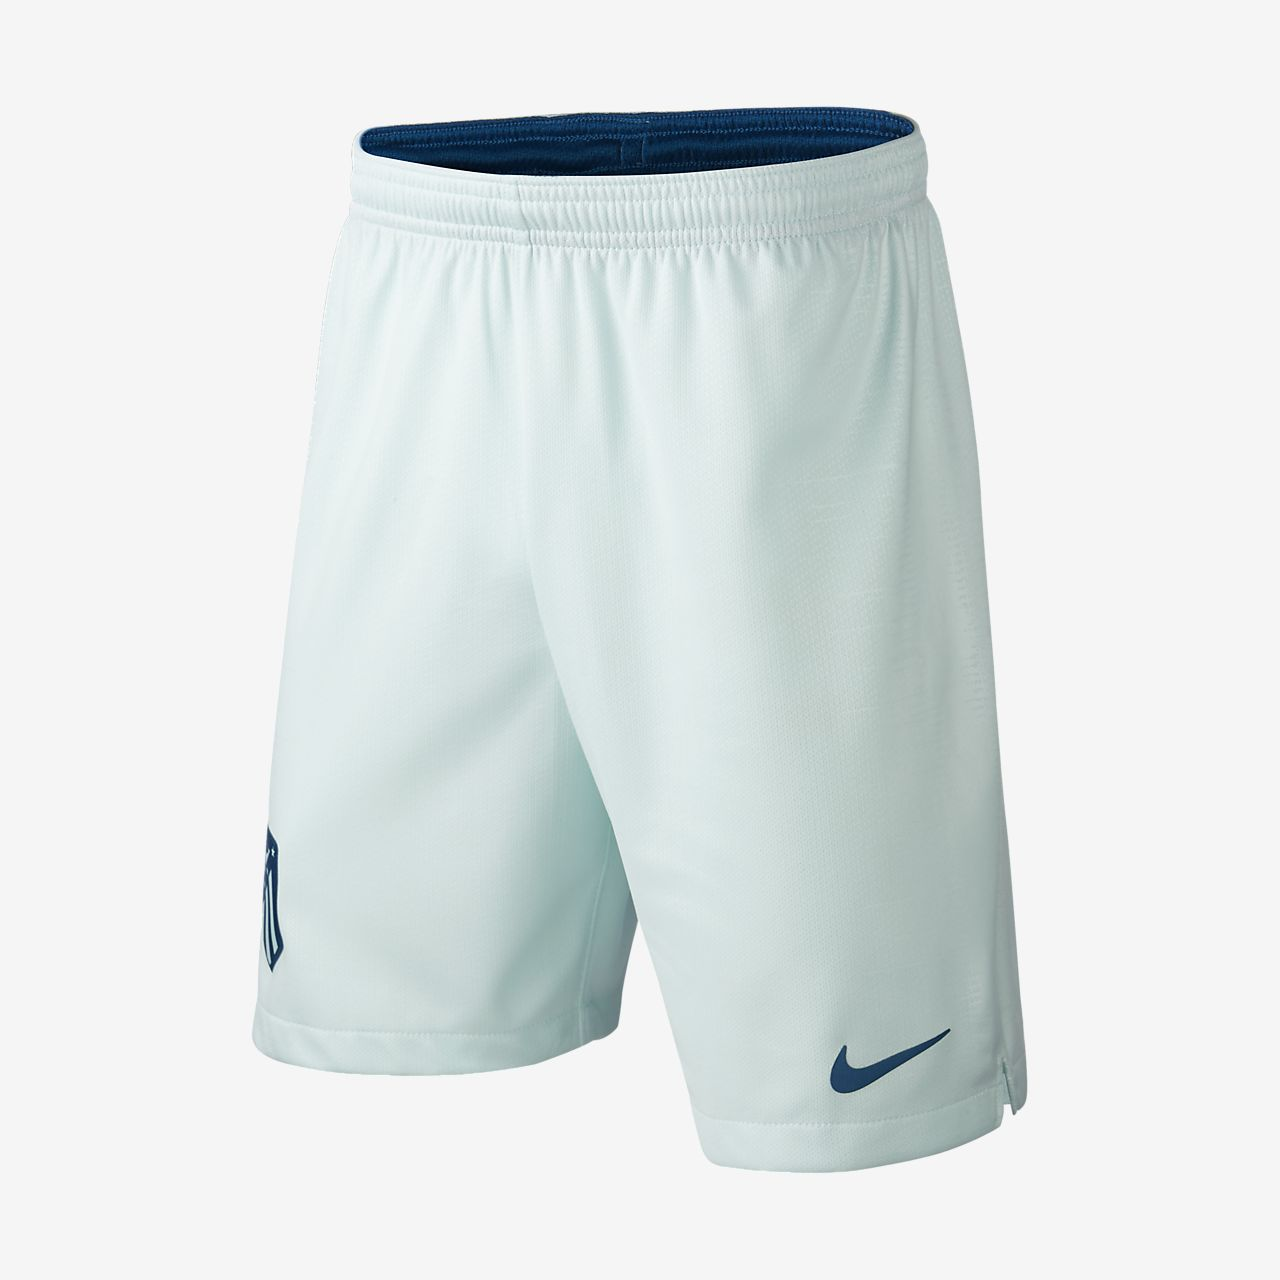 2018/19 Atlético de Madrid Stadium Third Older Kids' Football Shorts